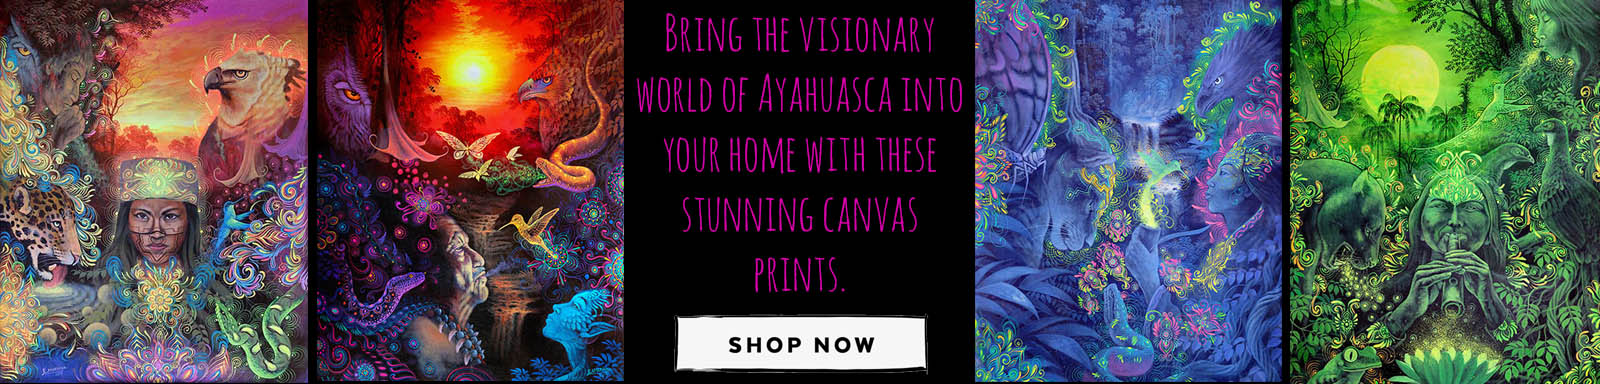 Gaia Tree Aya Art Banner - Ayahuasca Integration - Adjusting to Life After Your Ayahuasca Retreat